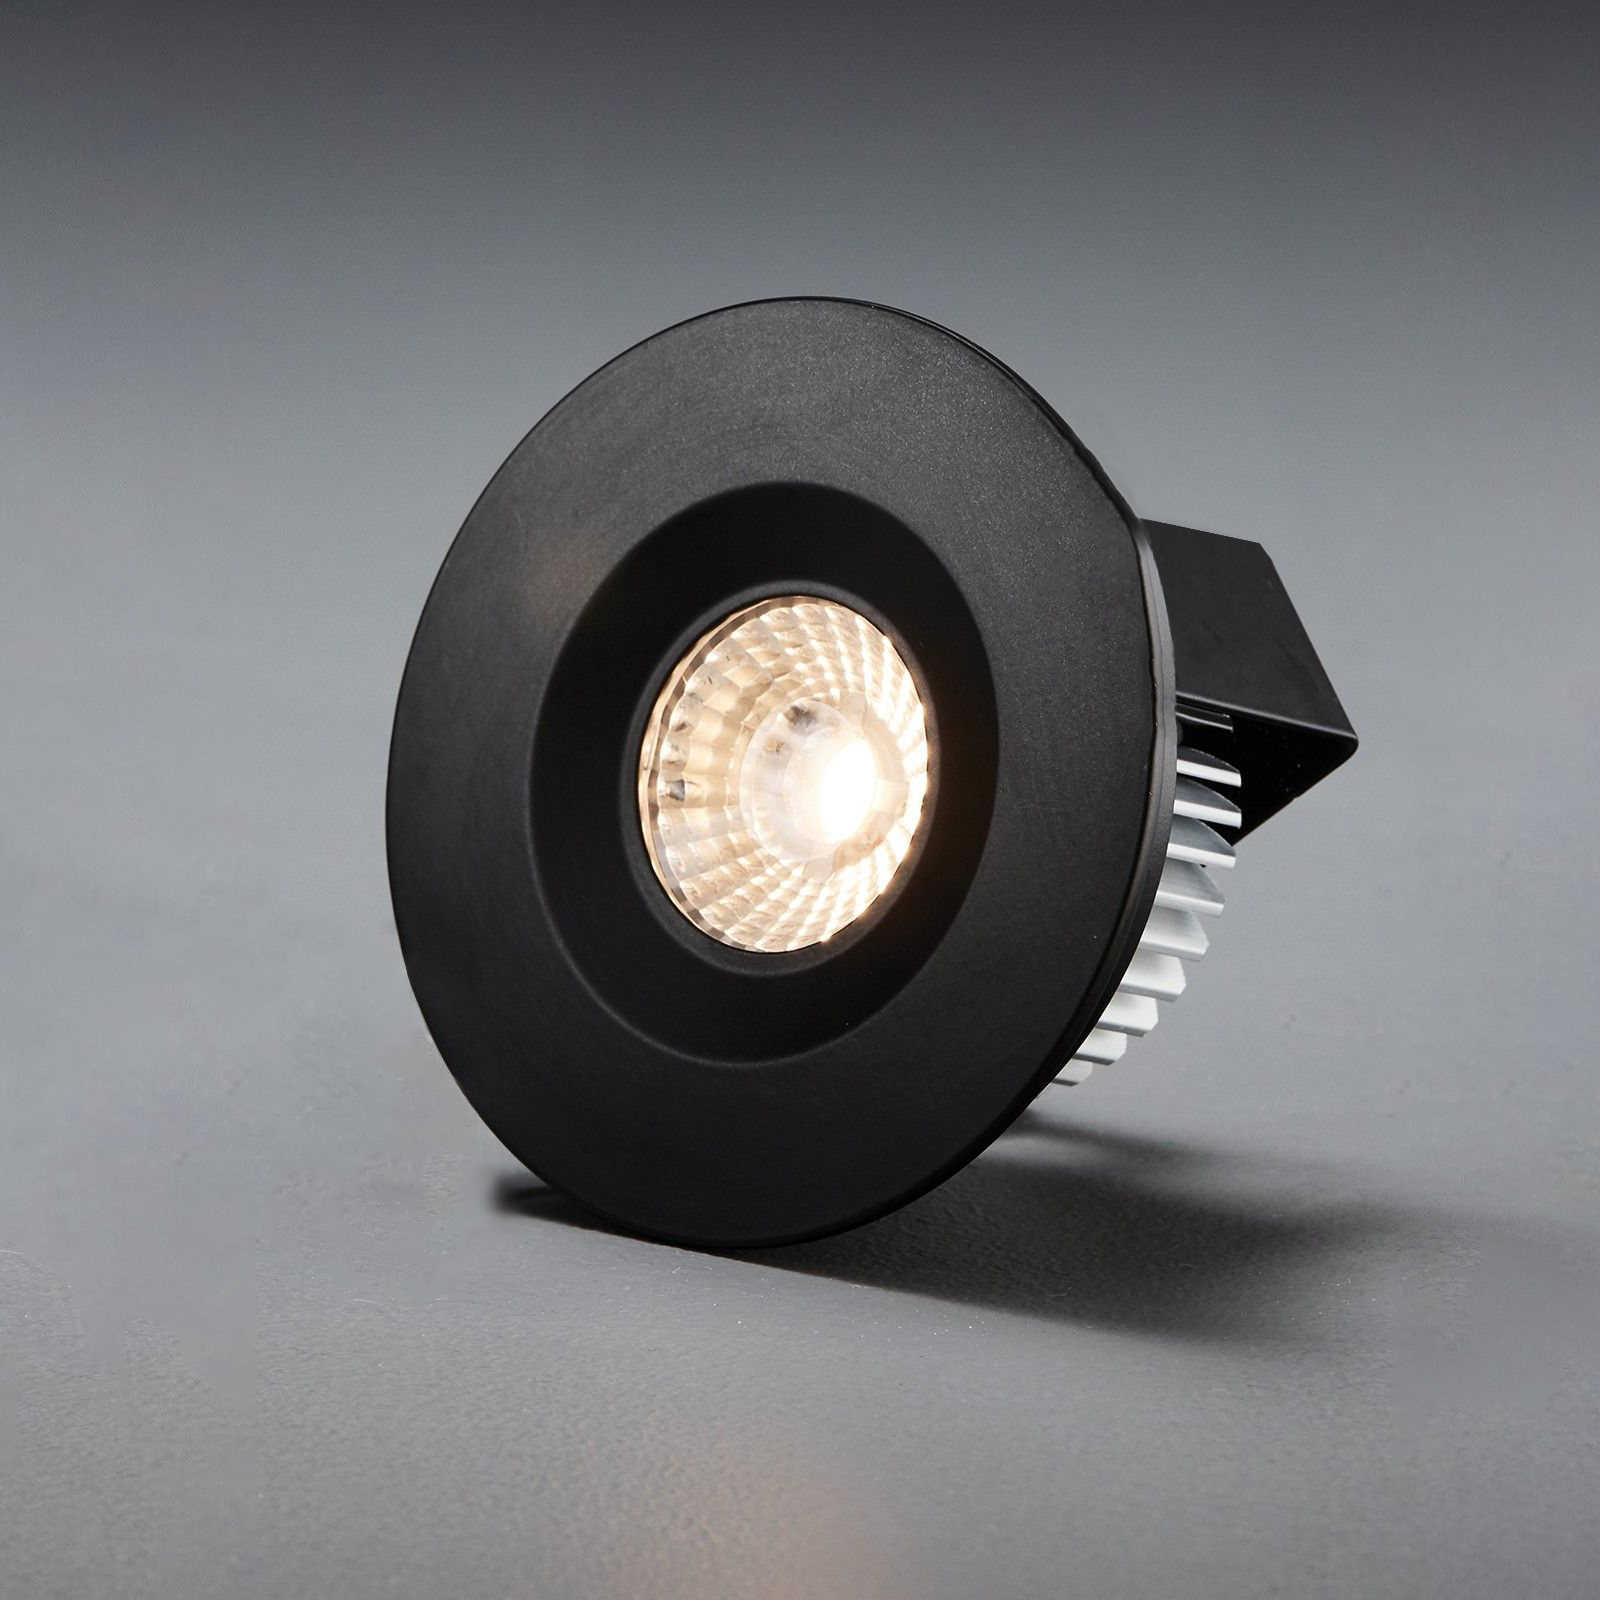 Lighting Direct More than 9 aw direct at pleasant prices up to 12 usd fast and free worldwide shipping! lighting direct